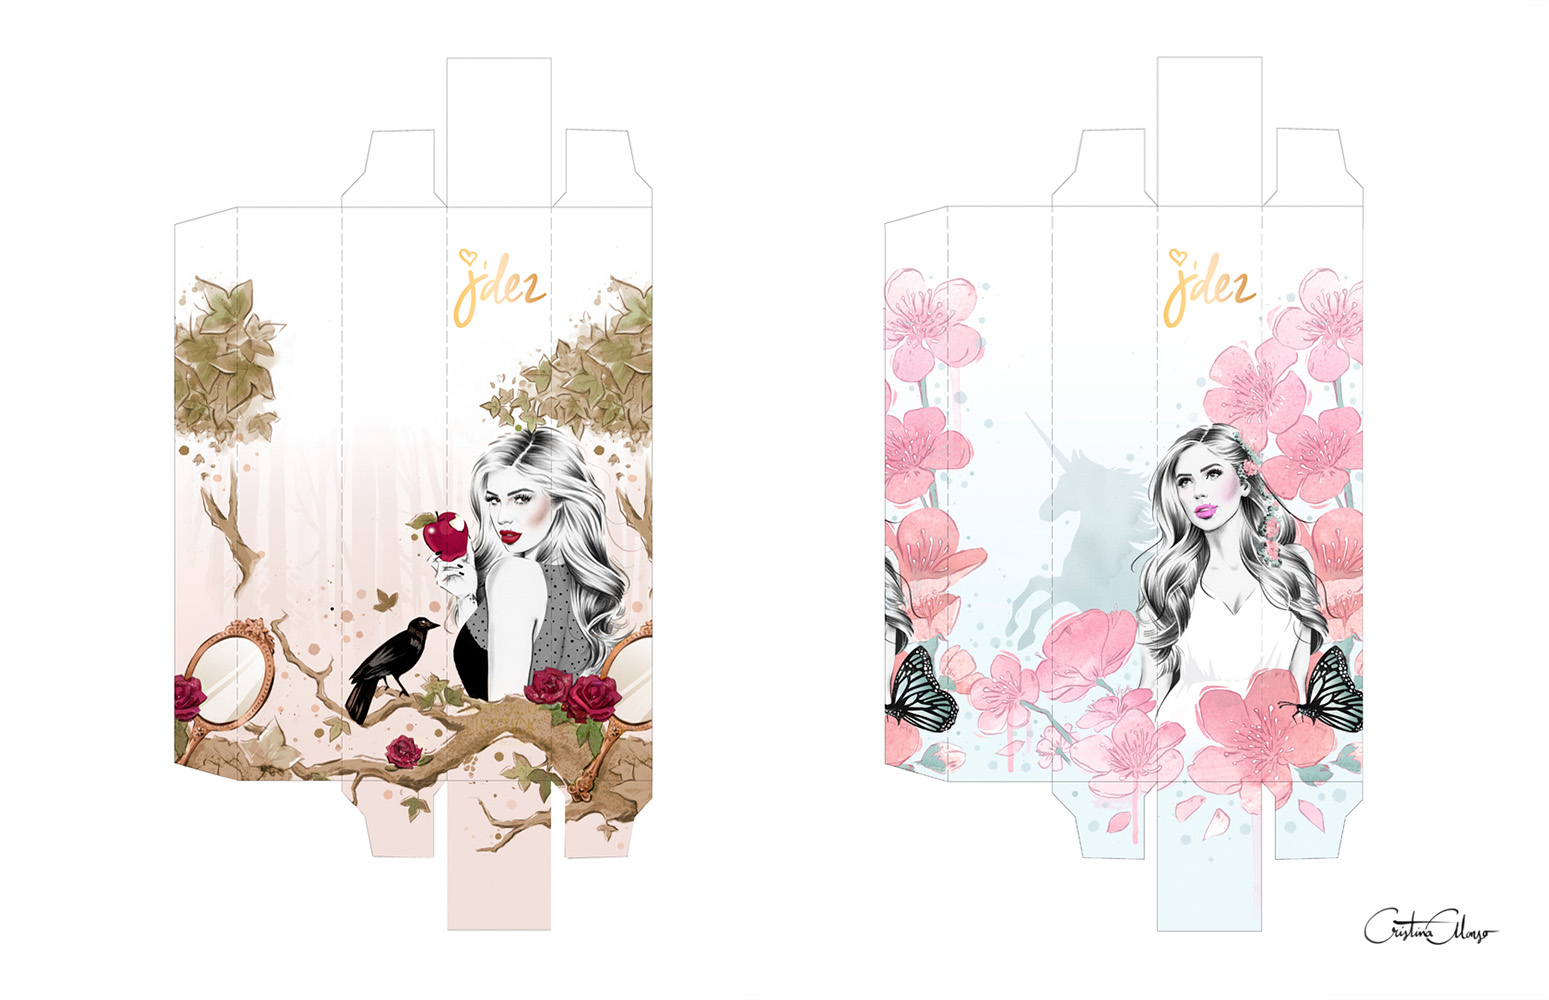 Illustrated boxes (mockups) for J'dez Beauty by Cristina Alonso